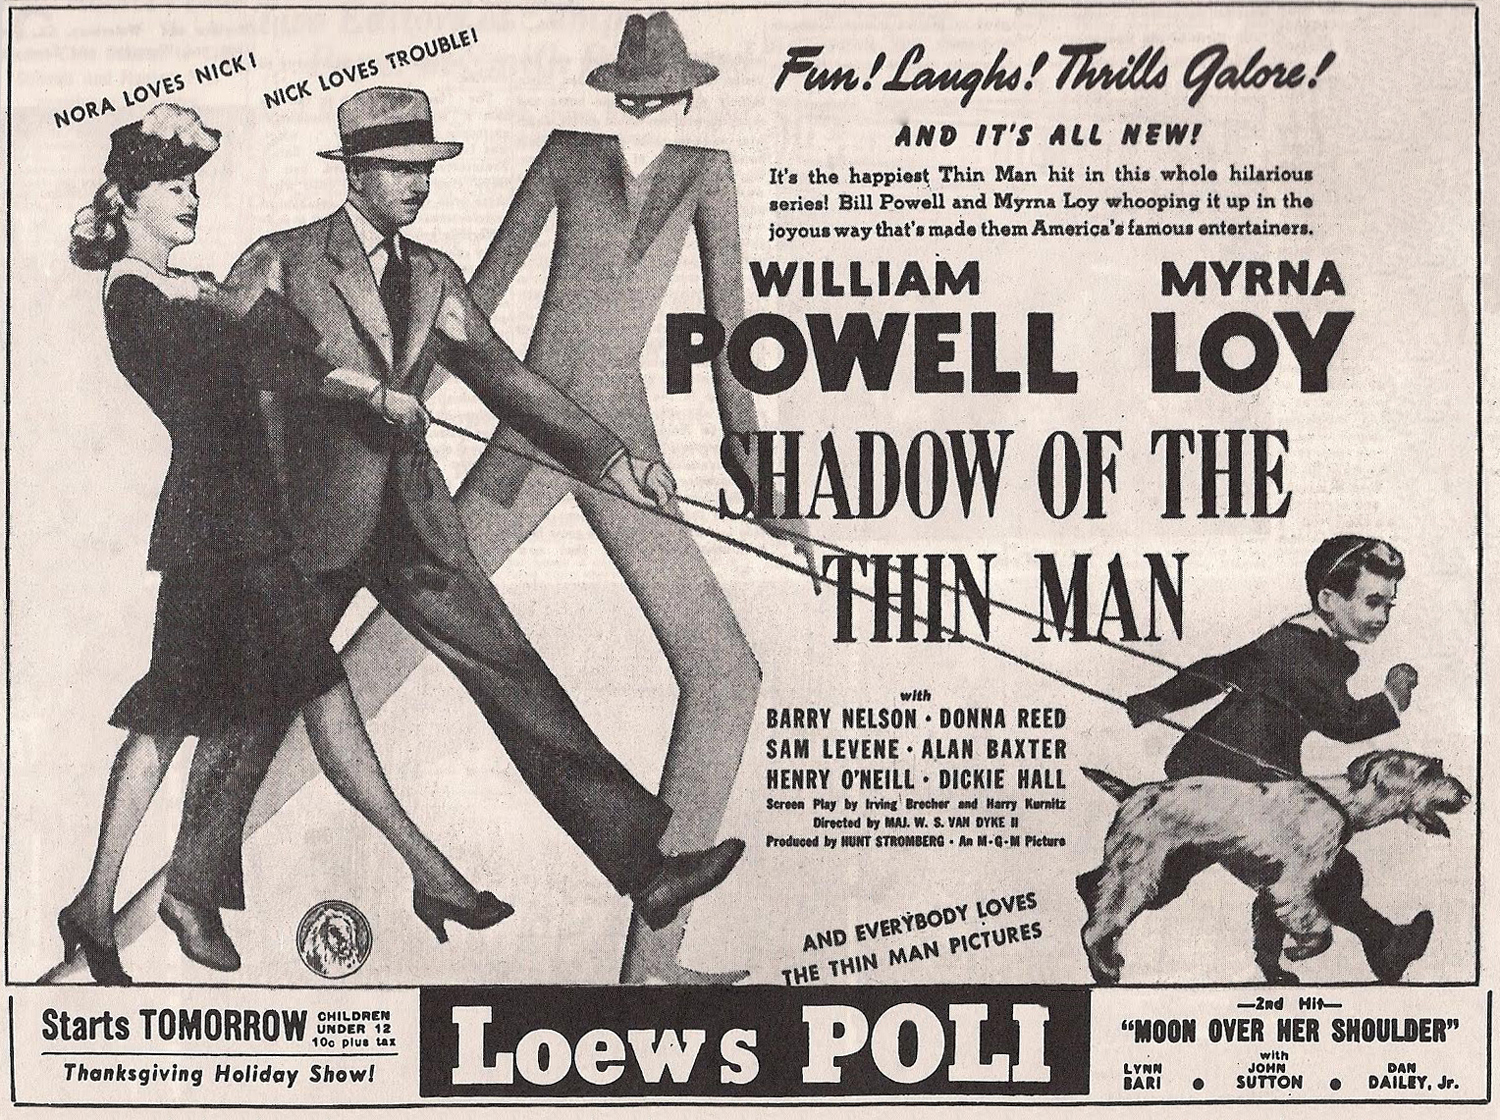 shadow-of-the-thin-man-print-ad-03-large